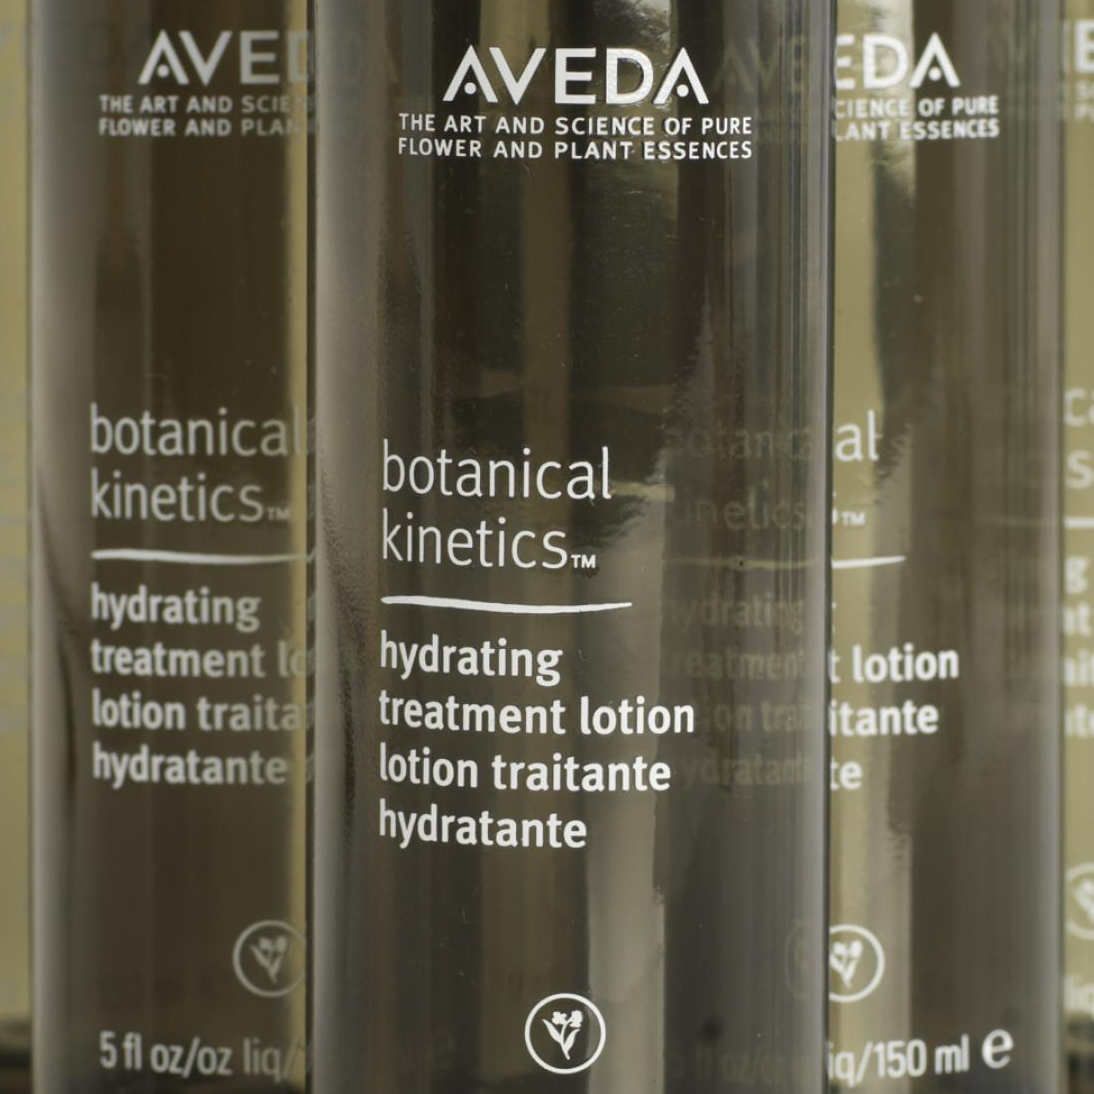 botanical kinetics_bottles_detail